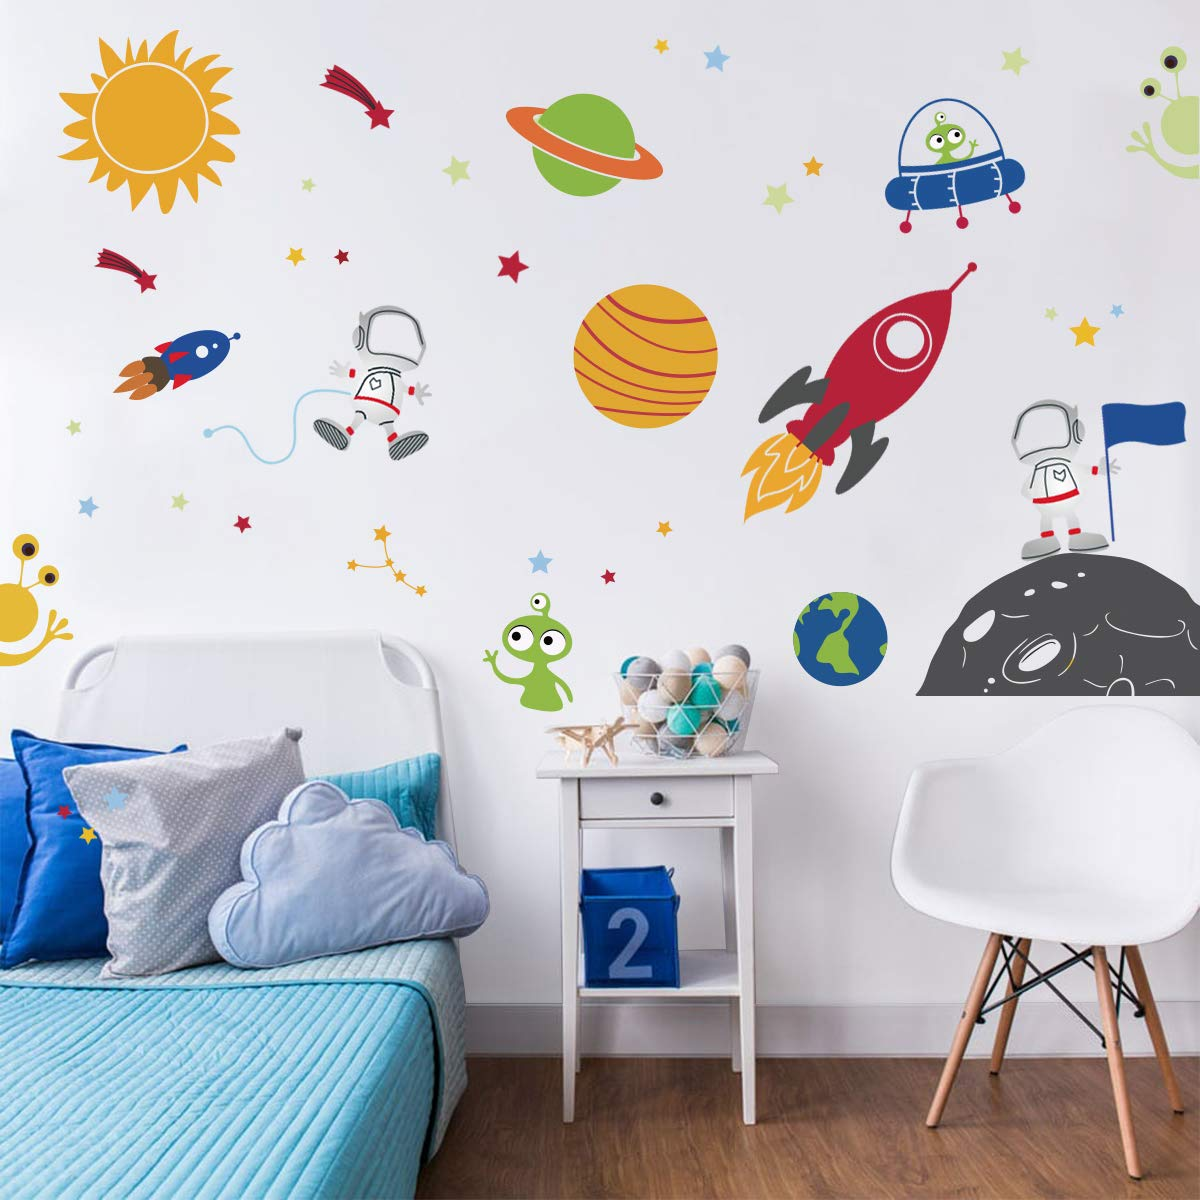 22 x 22 Imprinted Designs Spaceship Rocket with Planet Wall Decal Sticker Art in White Cute Boys Nursery Wall Decorations Childrens Room Decor Kids Room Wall Art